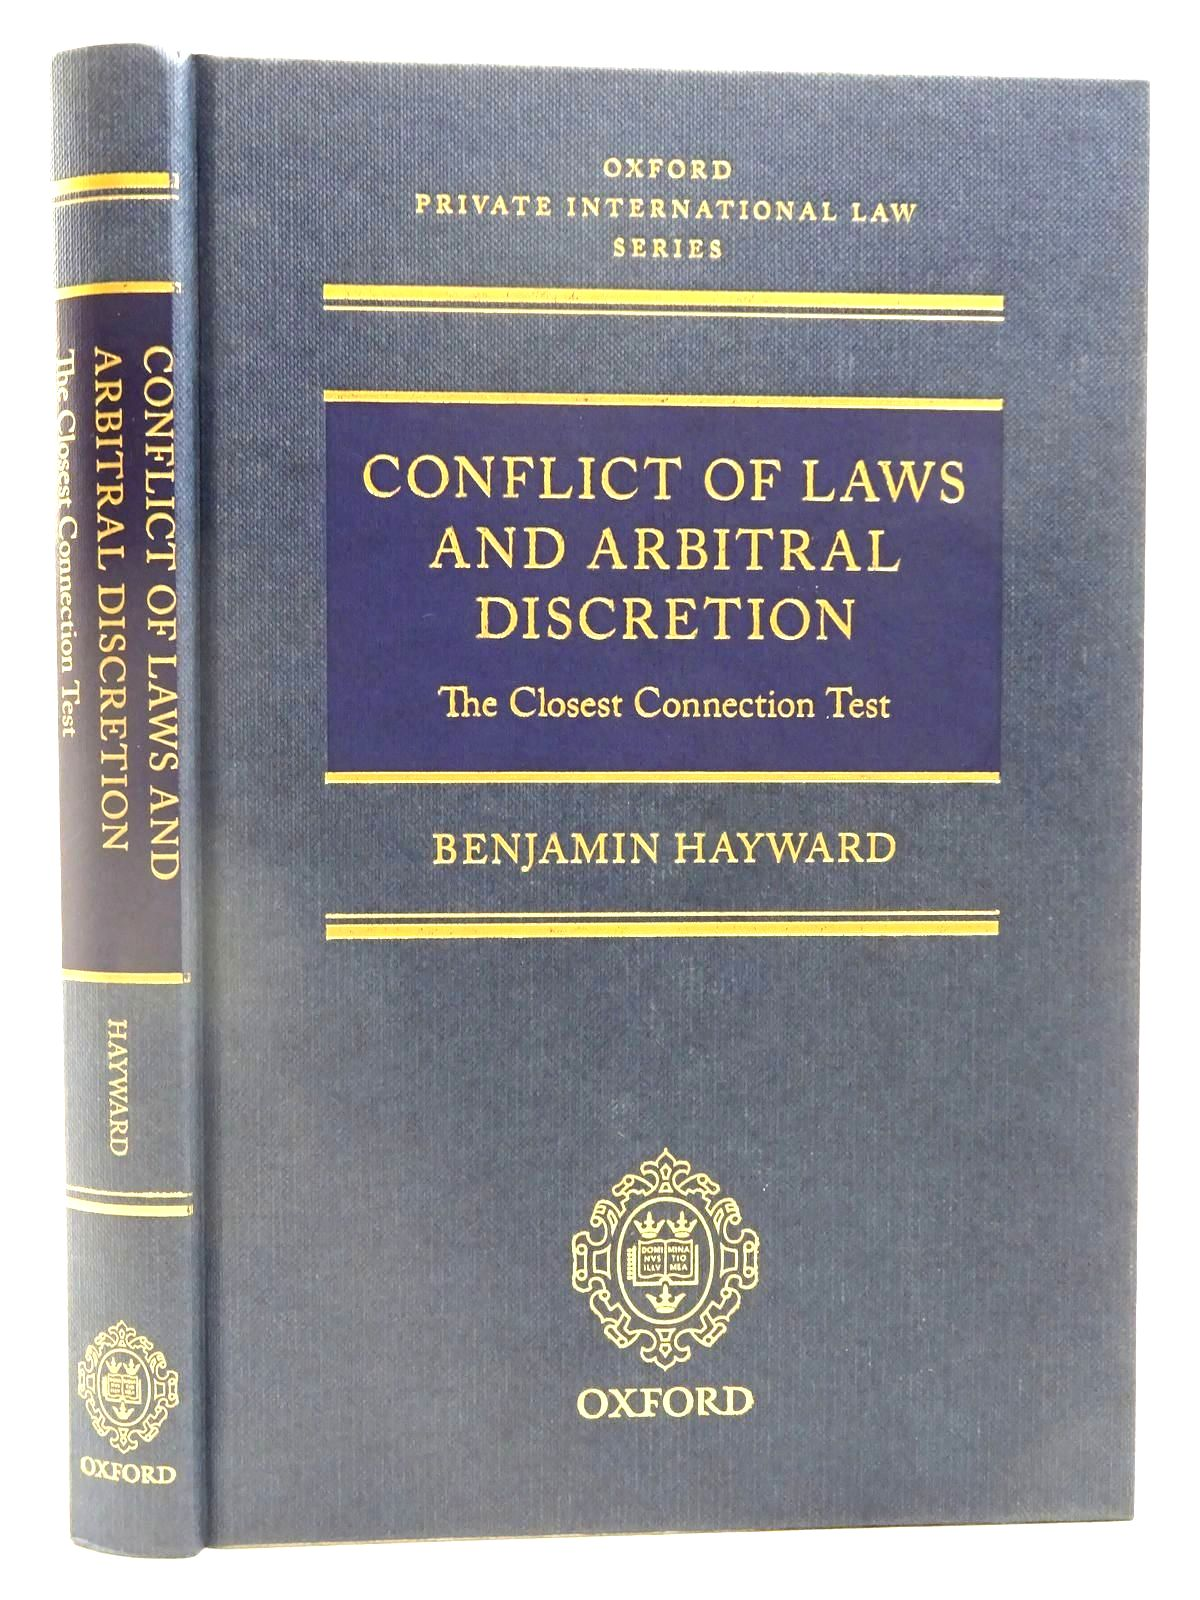 Photo of CONFLICT OF LAWS AND ARBITRAL DISCRETION written by Hayward, Benjamin published by Oxford University Press (STOCK CODE: 2128155)  for sale by Stella & Rose's Books